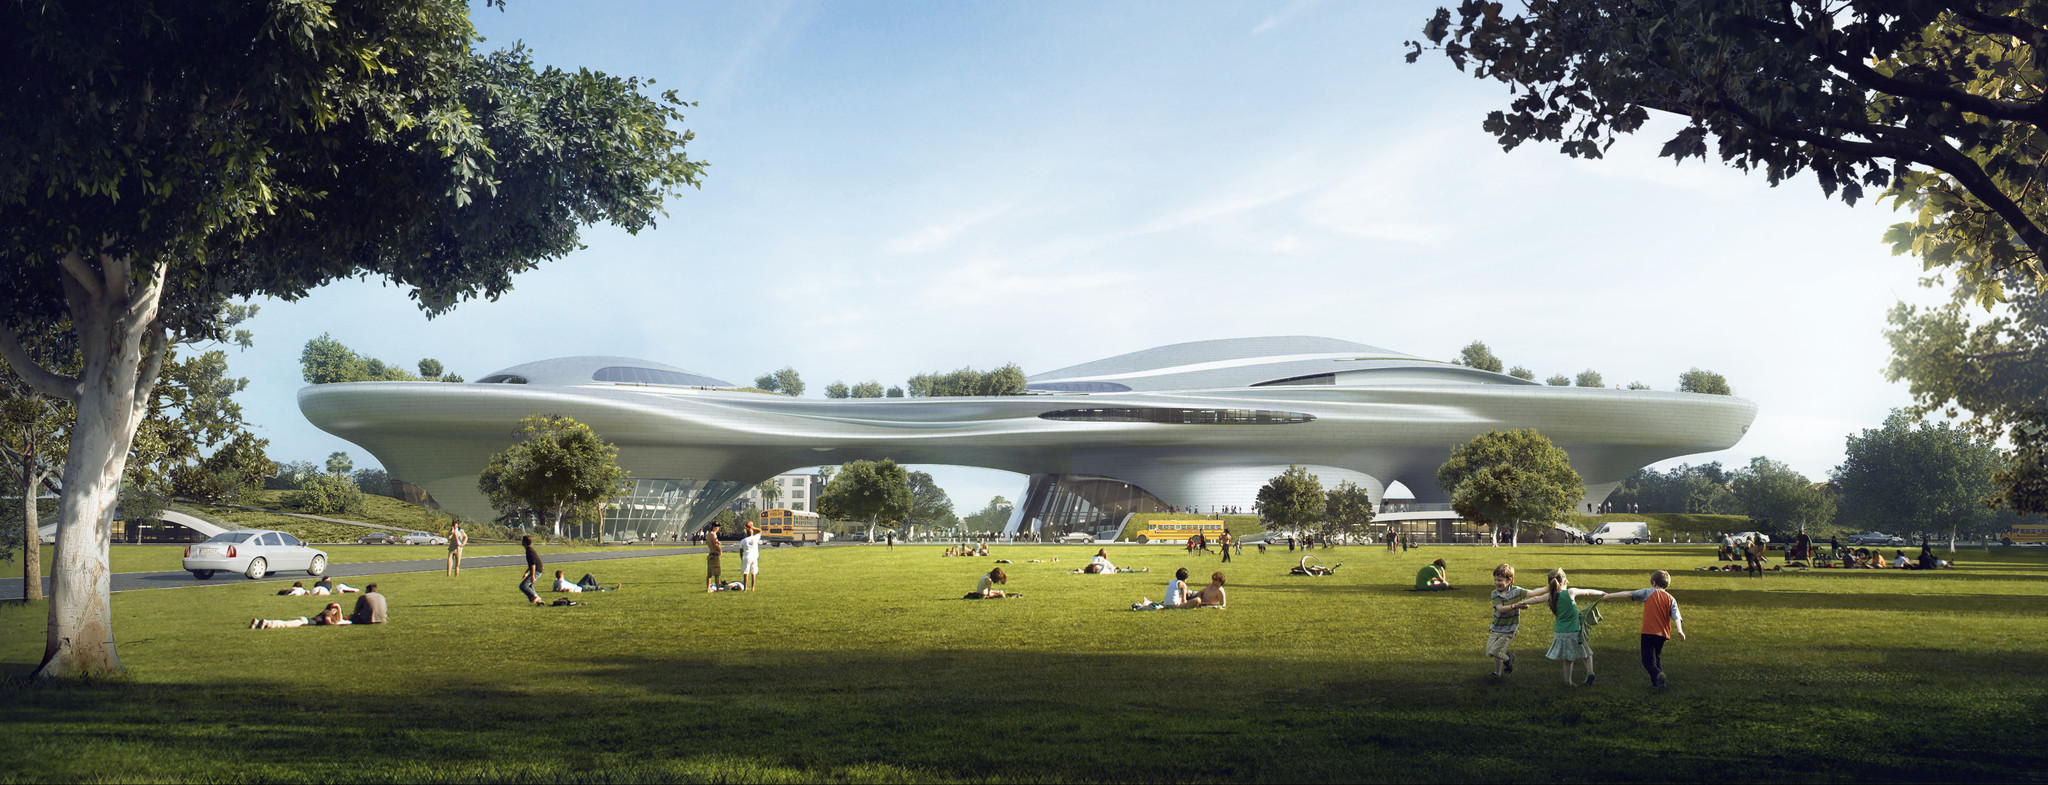 A rendering of architect Ma Yansong's plan for the Lucas Museum of Narrative Art in L.A.'s Exposition Park.